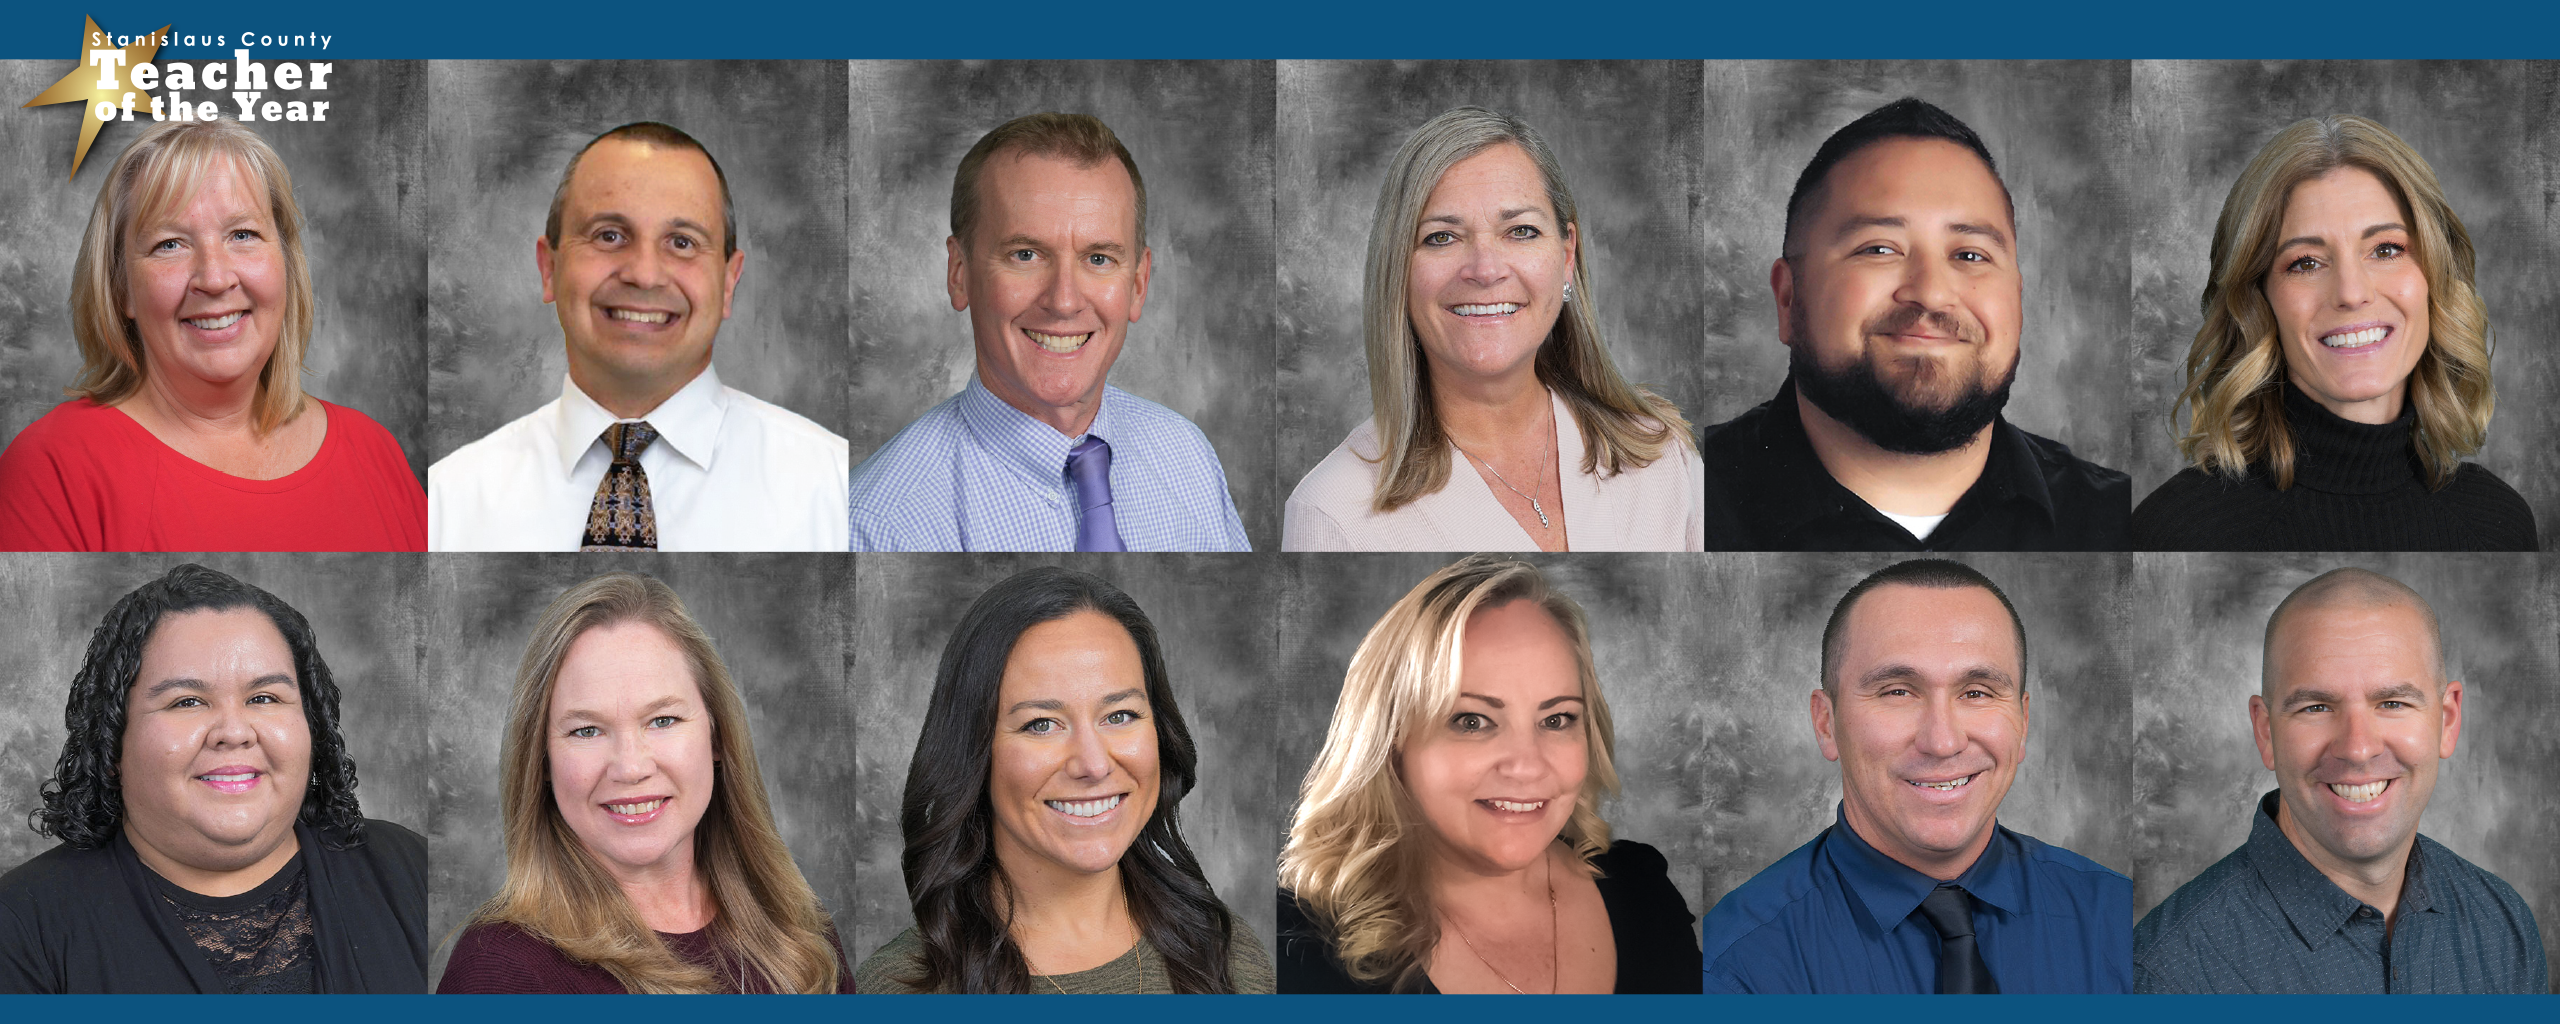 Teacher of the Year nominees, showing twelve headshots